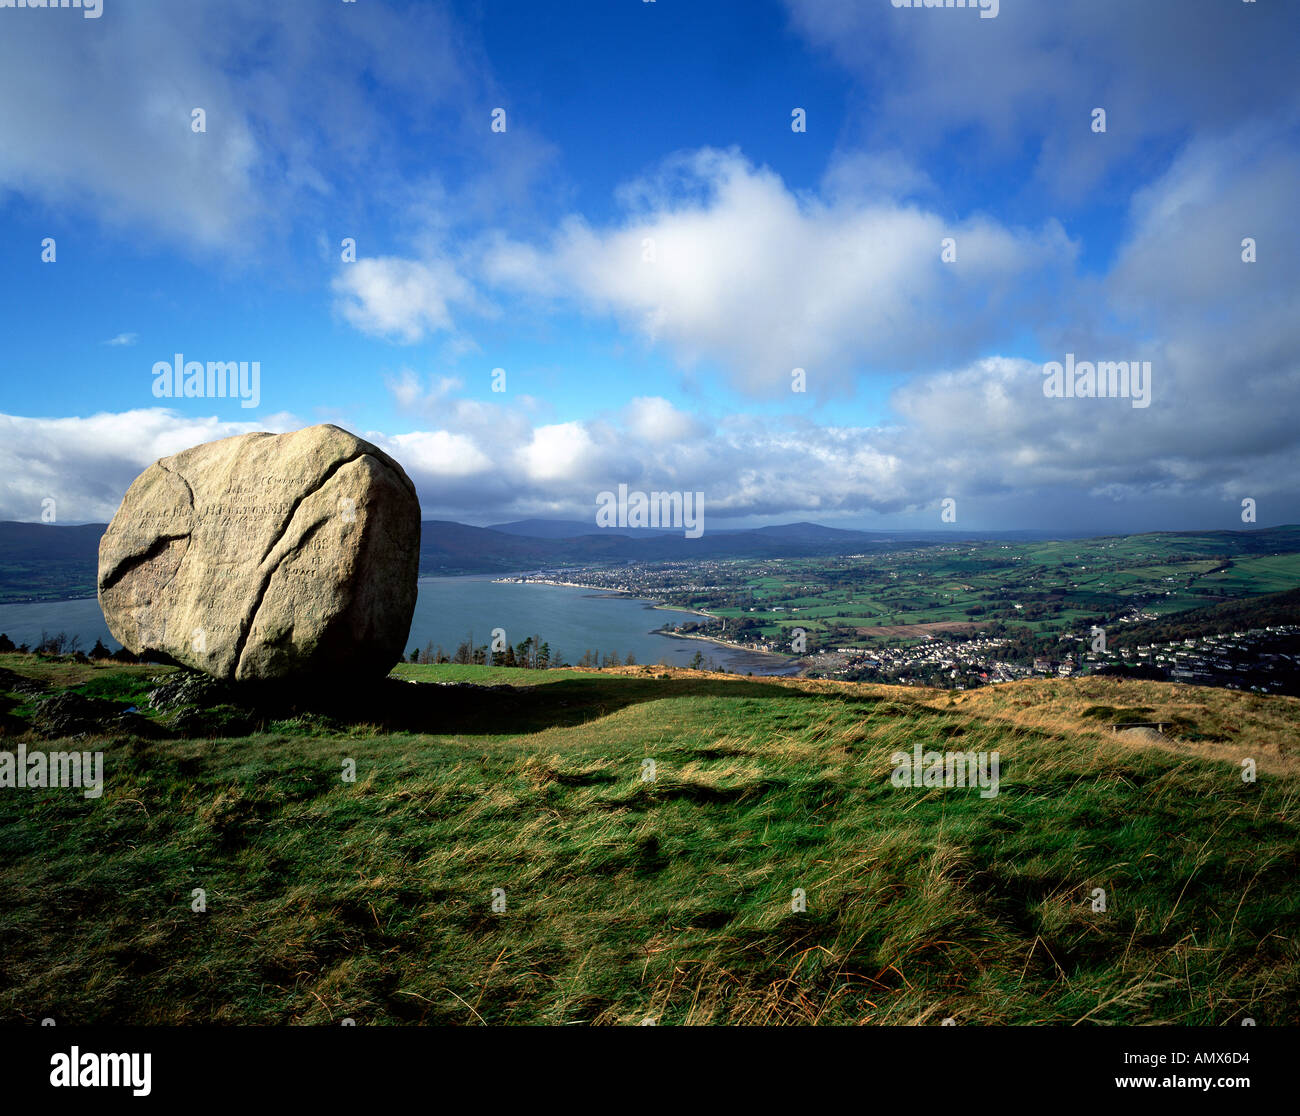 Cloughmore Stone, Rostrevor, County Down, Northern Ireland - Stock Image